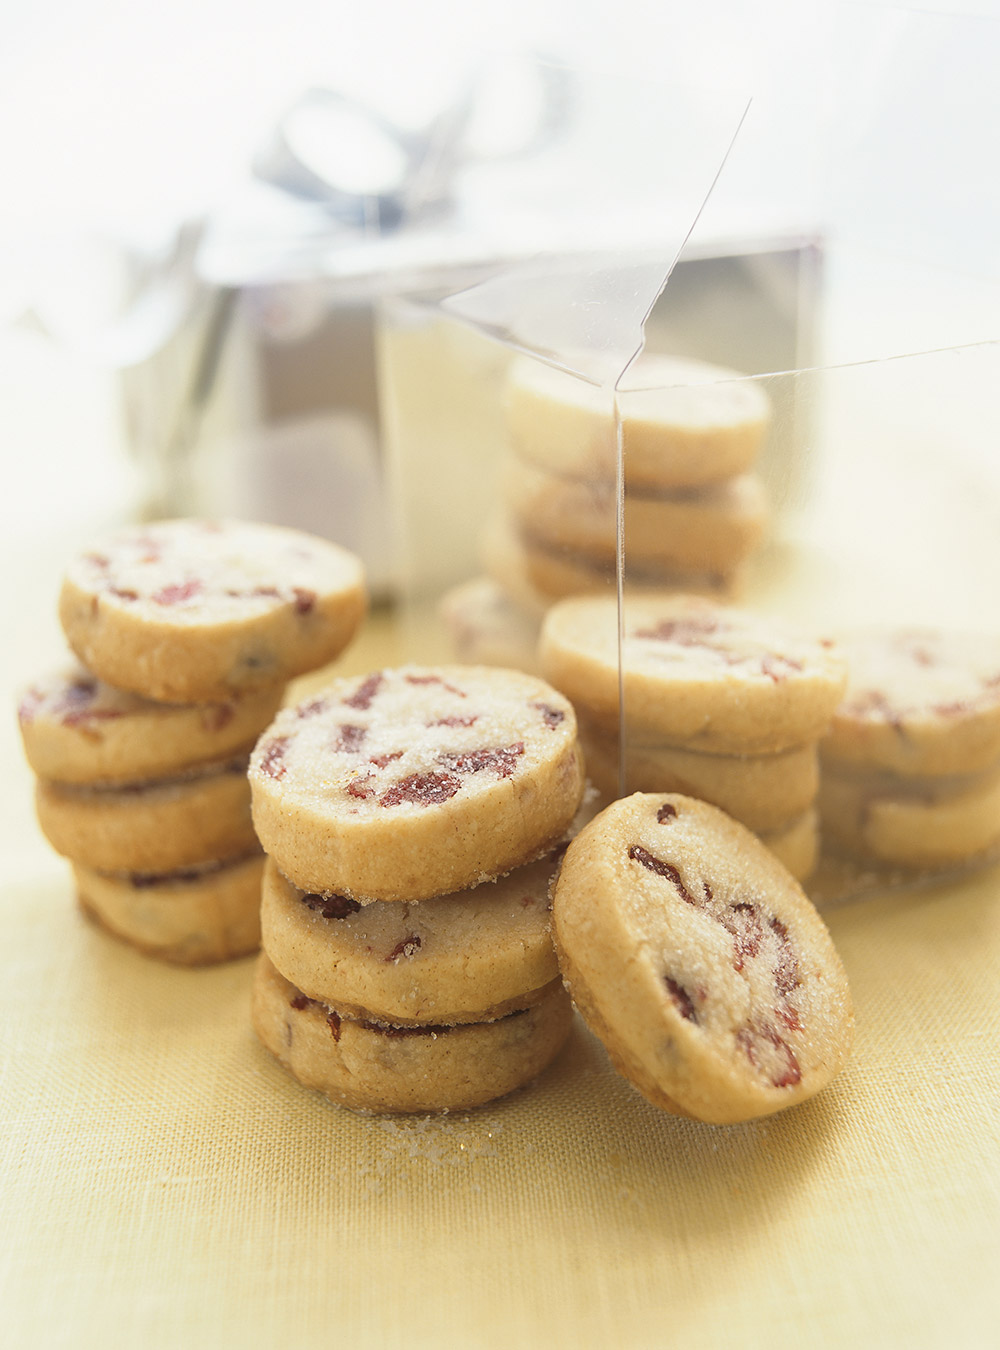 Biscuits aux canneberges rfrigrateur  Ricardo